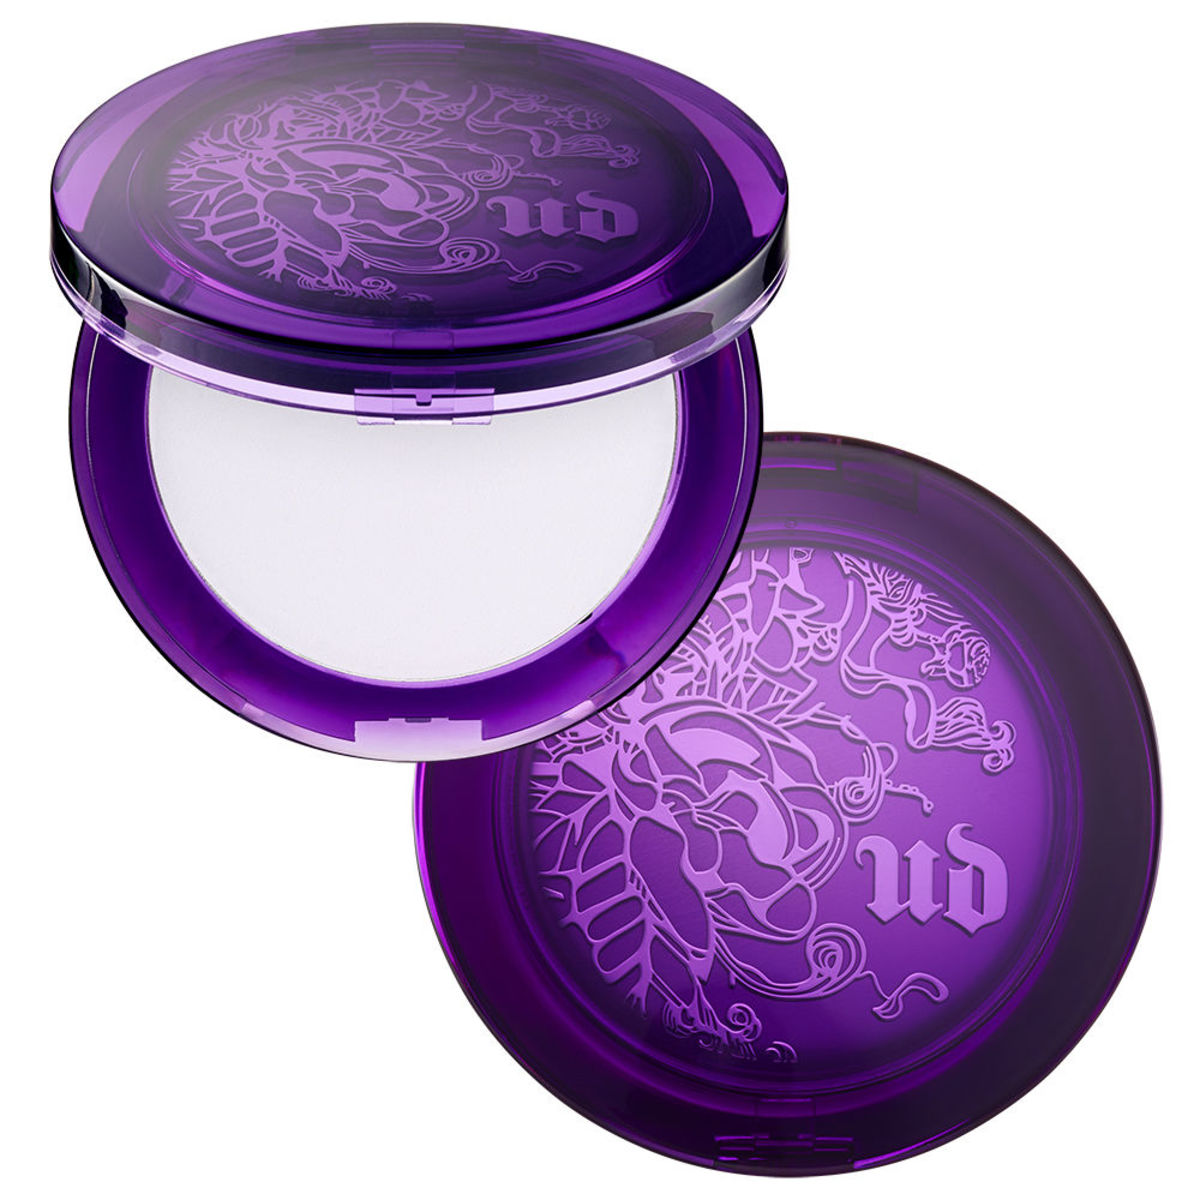 #9 Urban Decay's De-Slick Mattifying Powder comes in a beautiful purple compact.